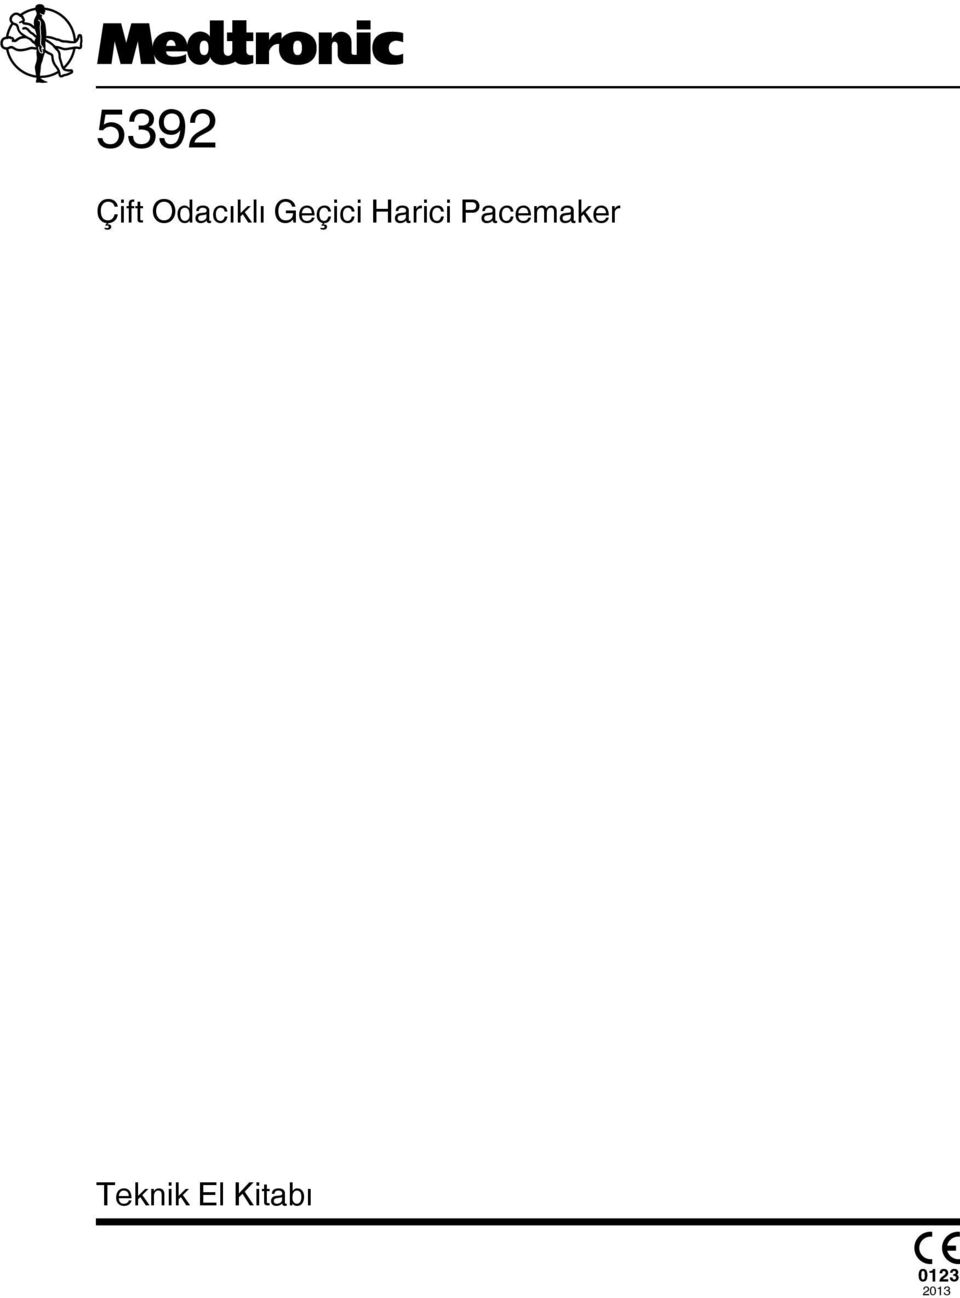 Harici Pacemaker